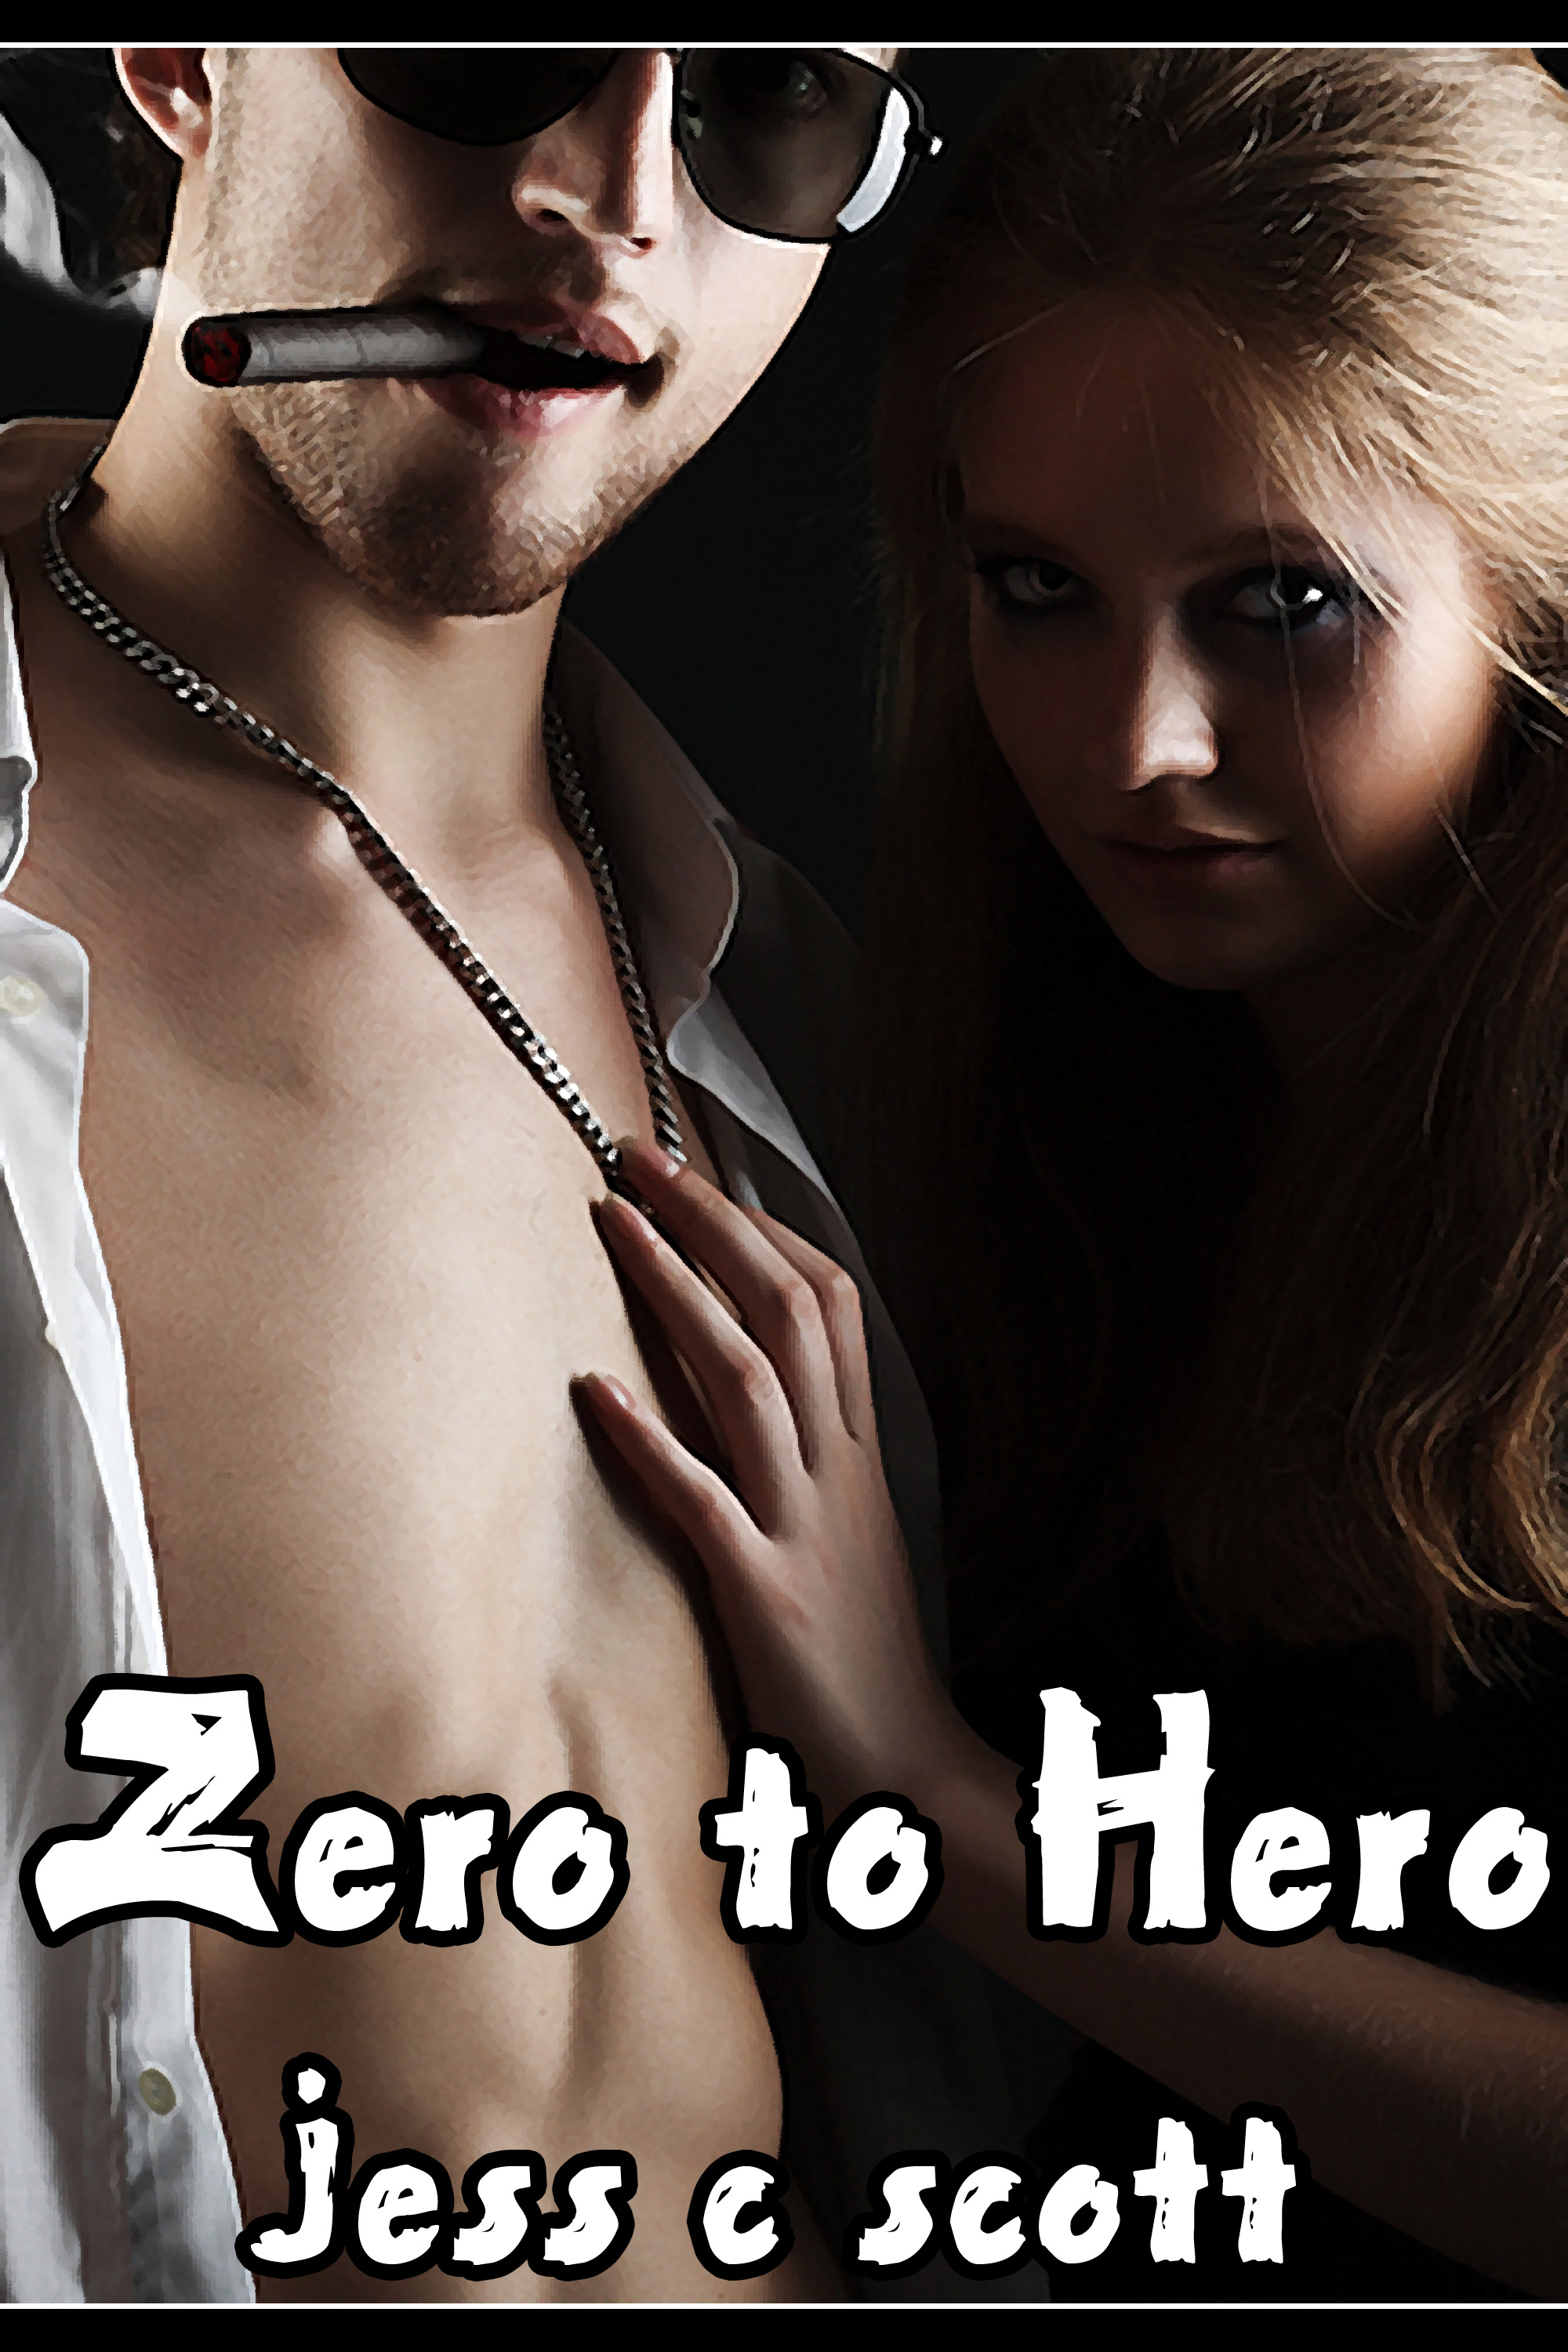 Jess C Scott - Zero to Hero